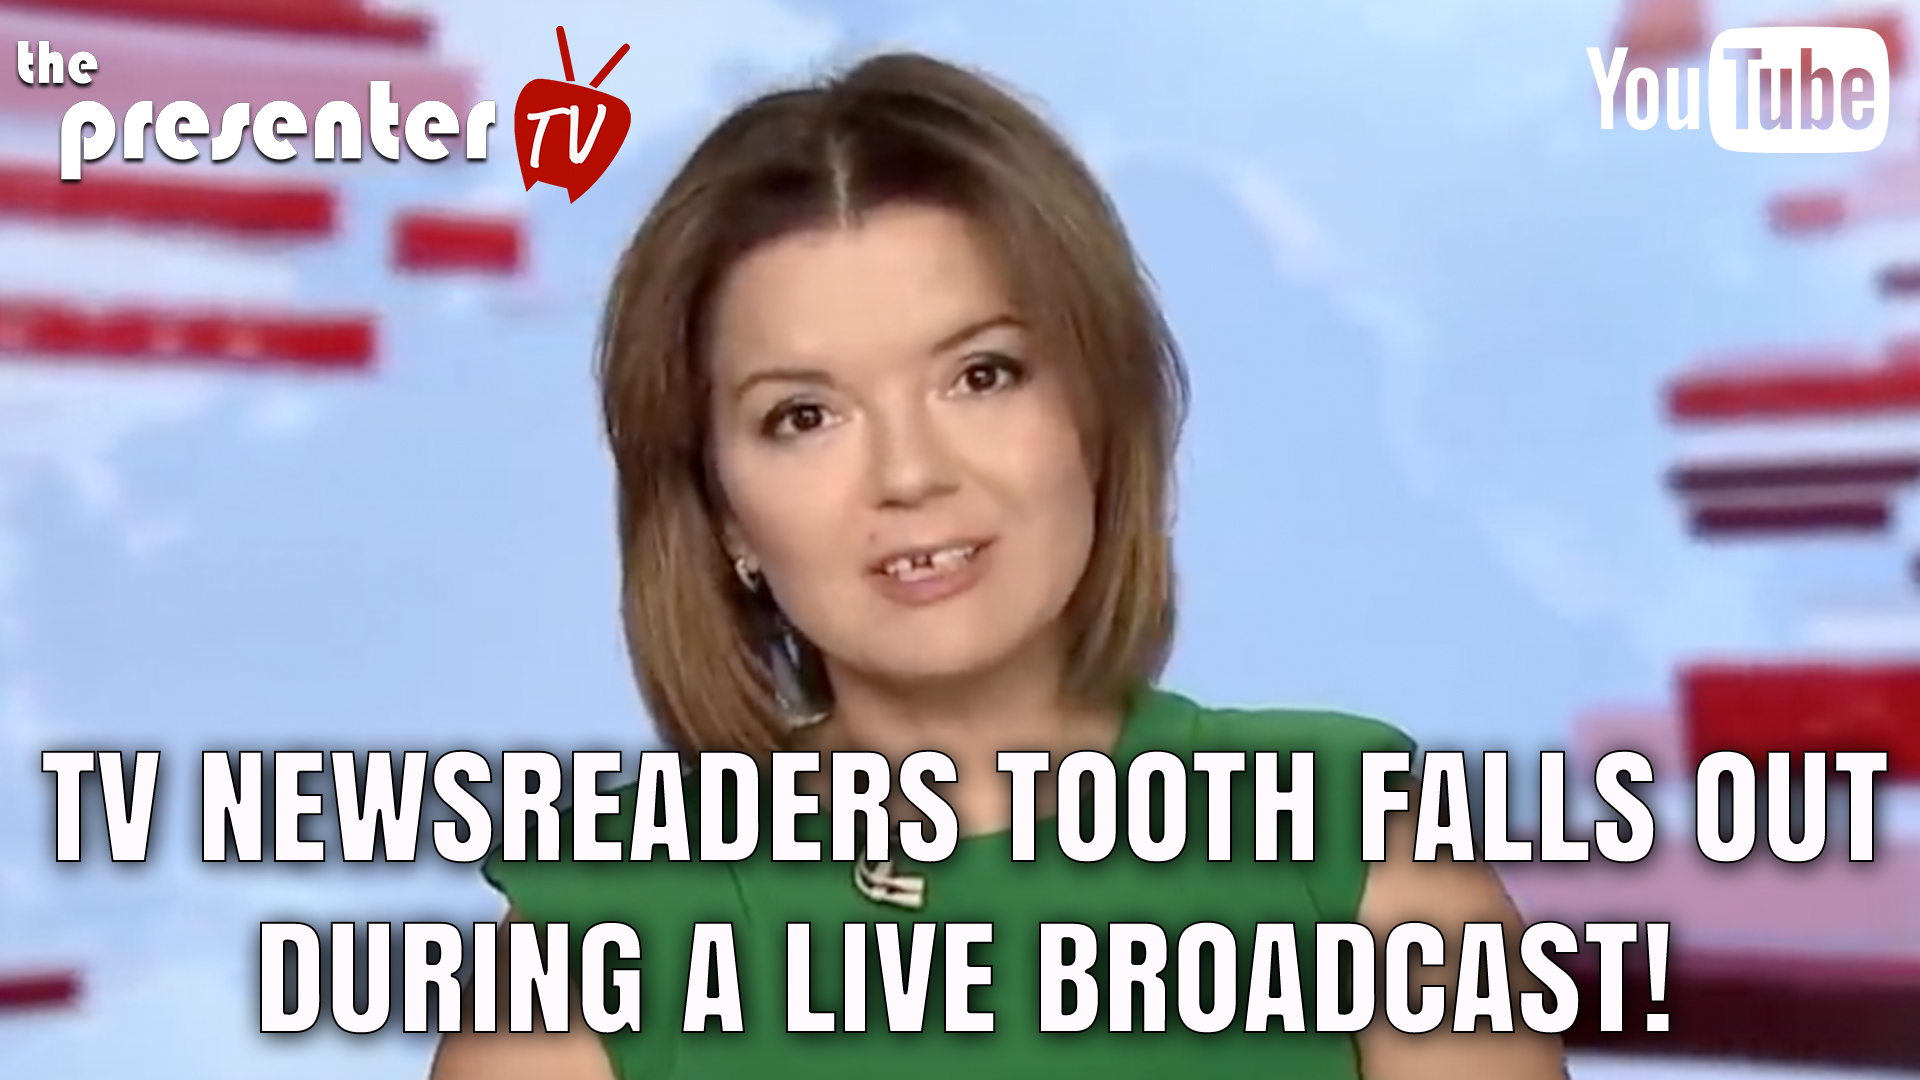 News Reader loses her front tooth during a live broadcast!